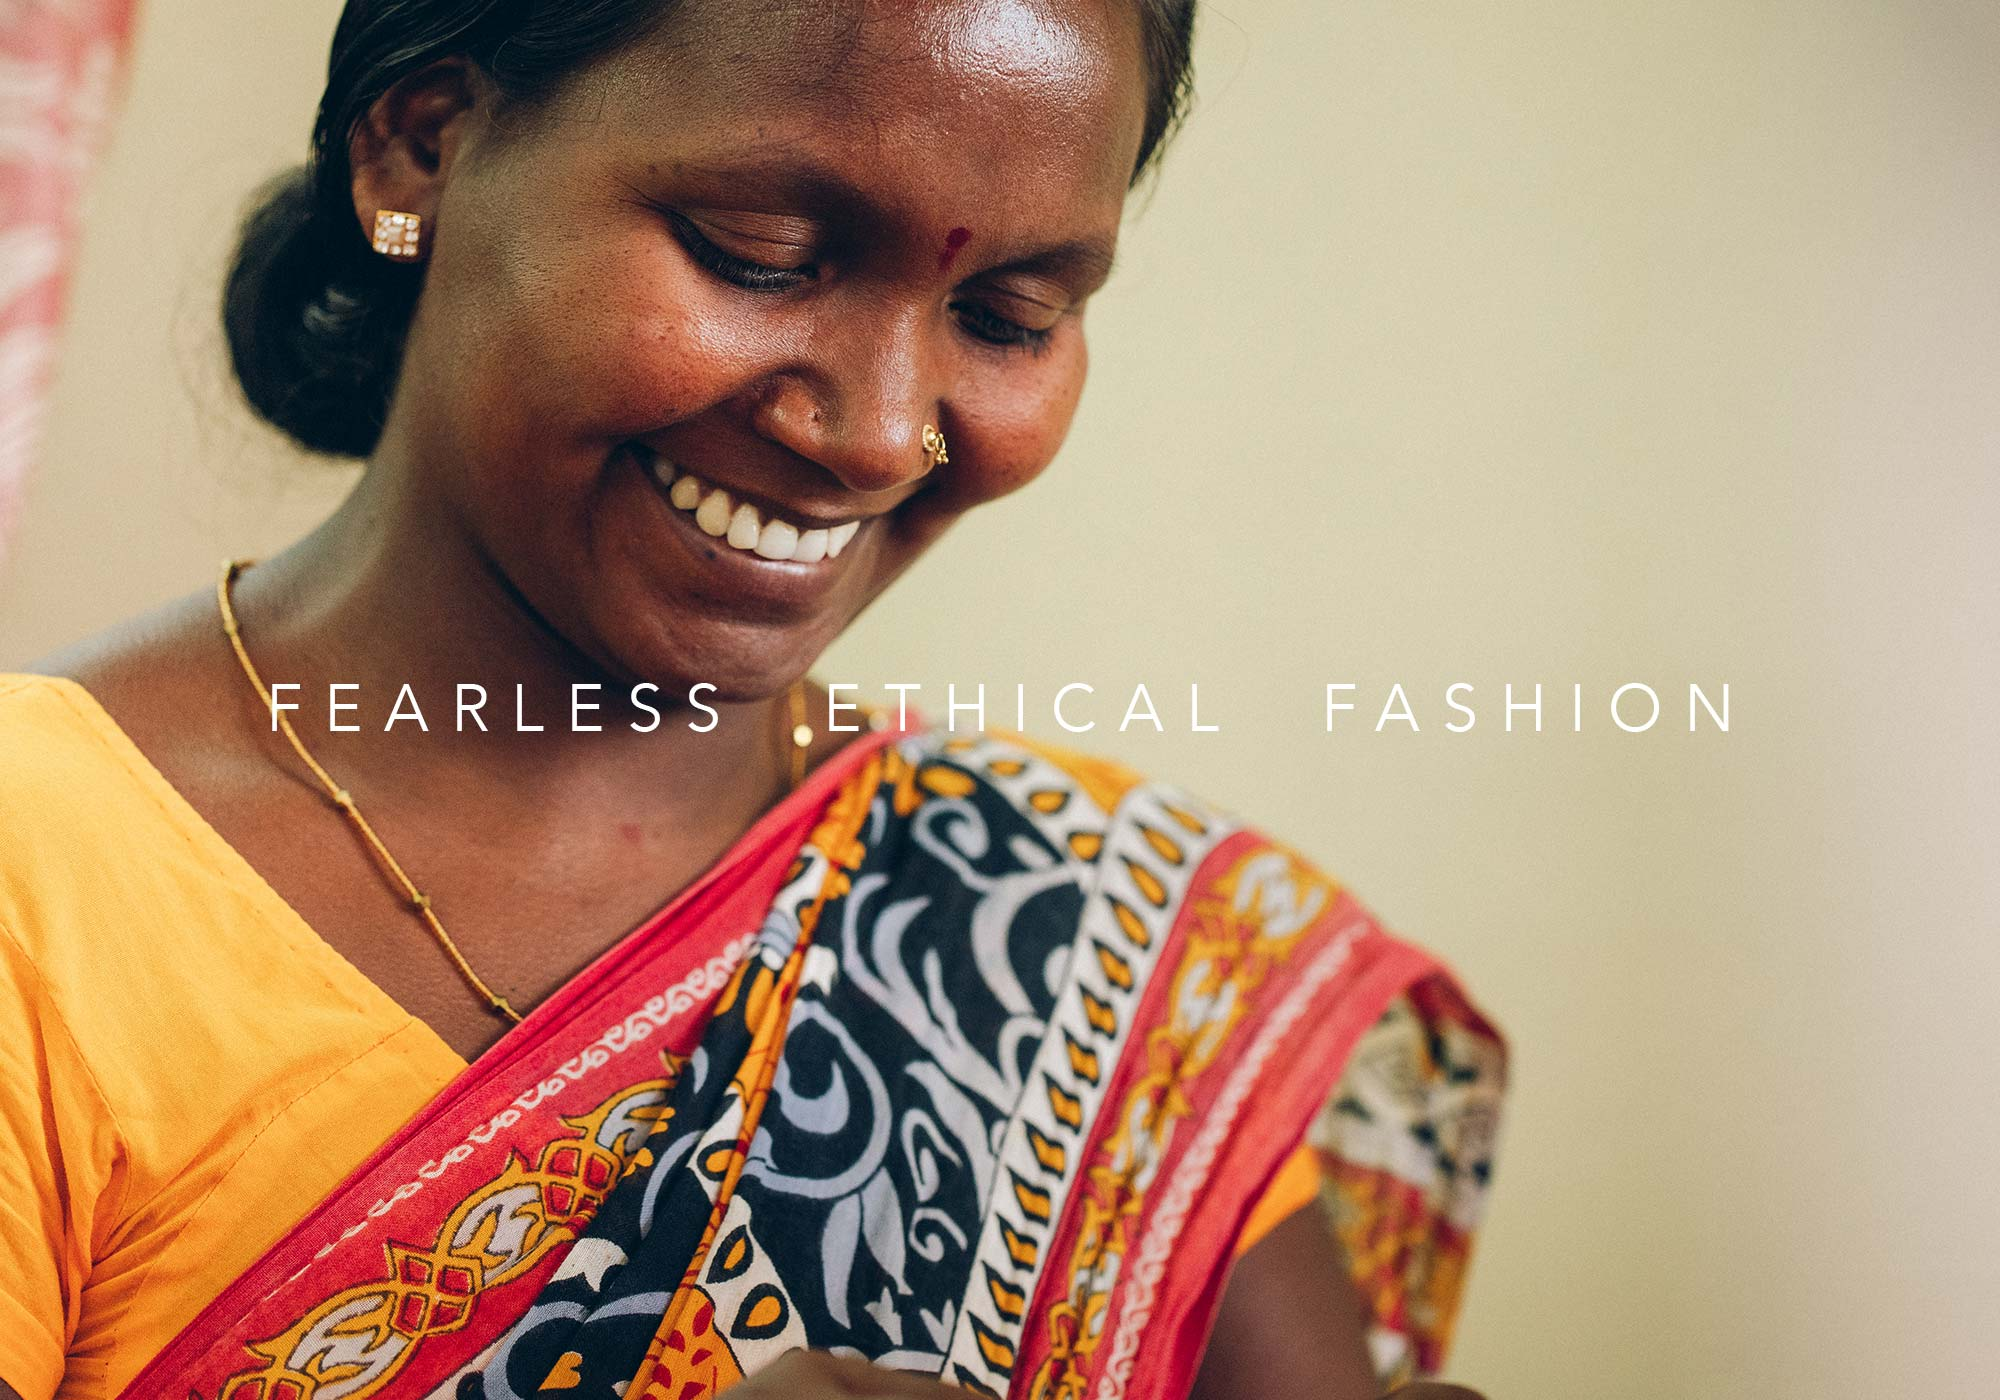 Holi Boli Fashionz Fearless Ethical Fashion